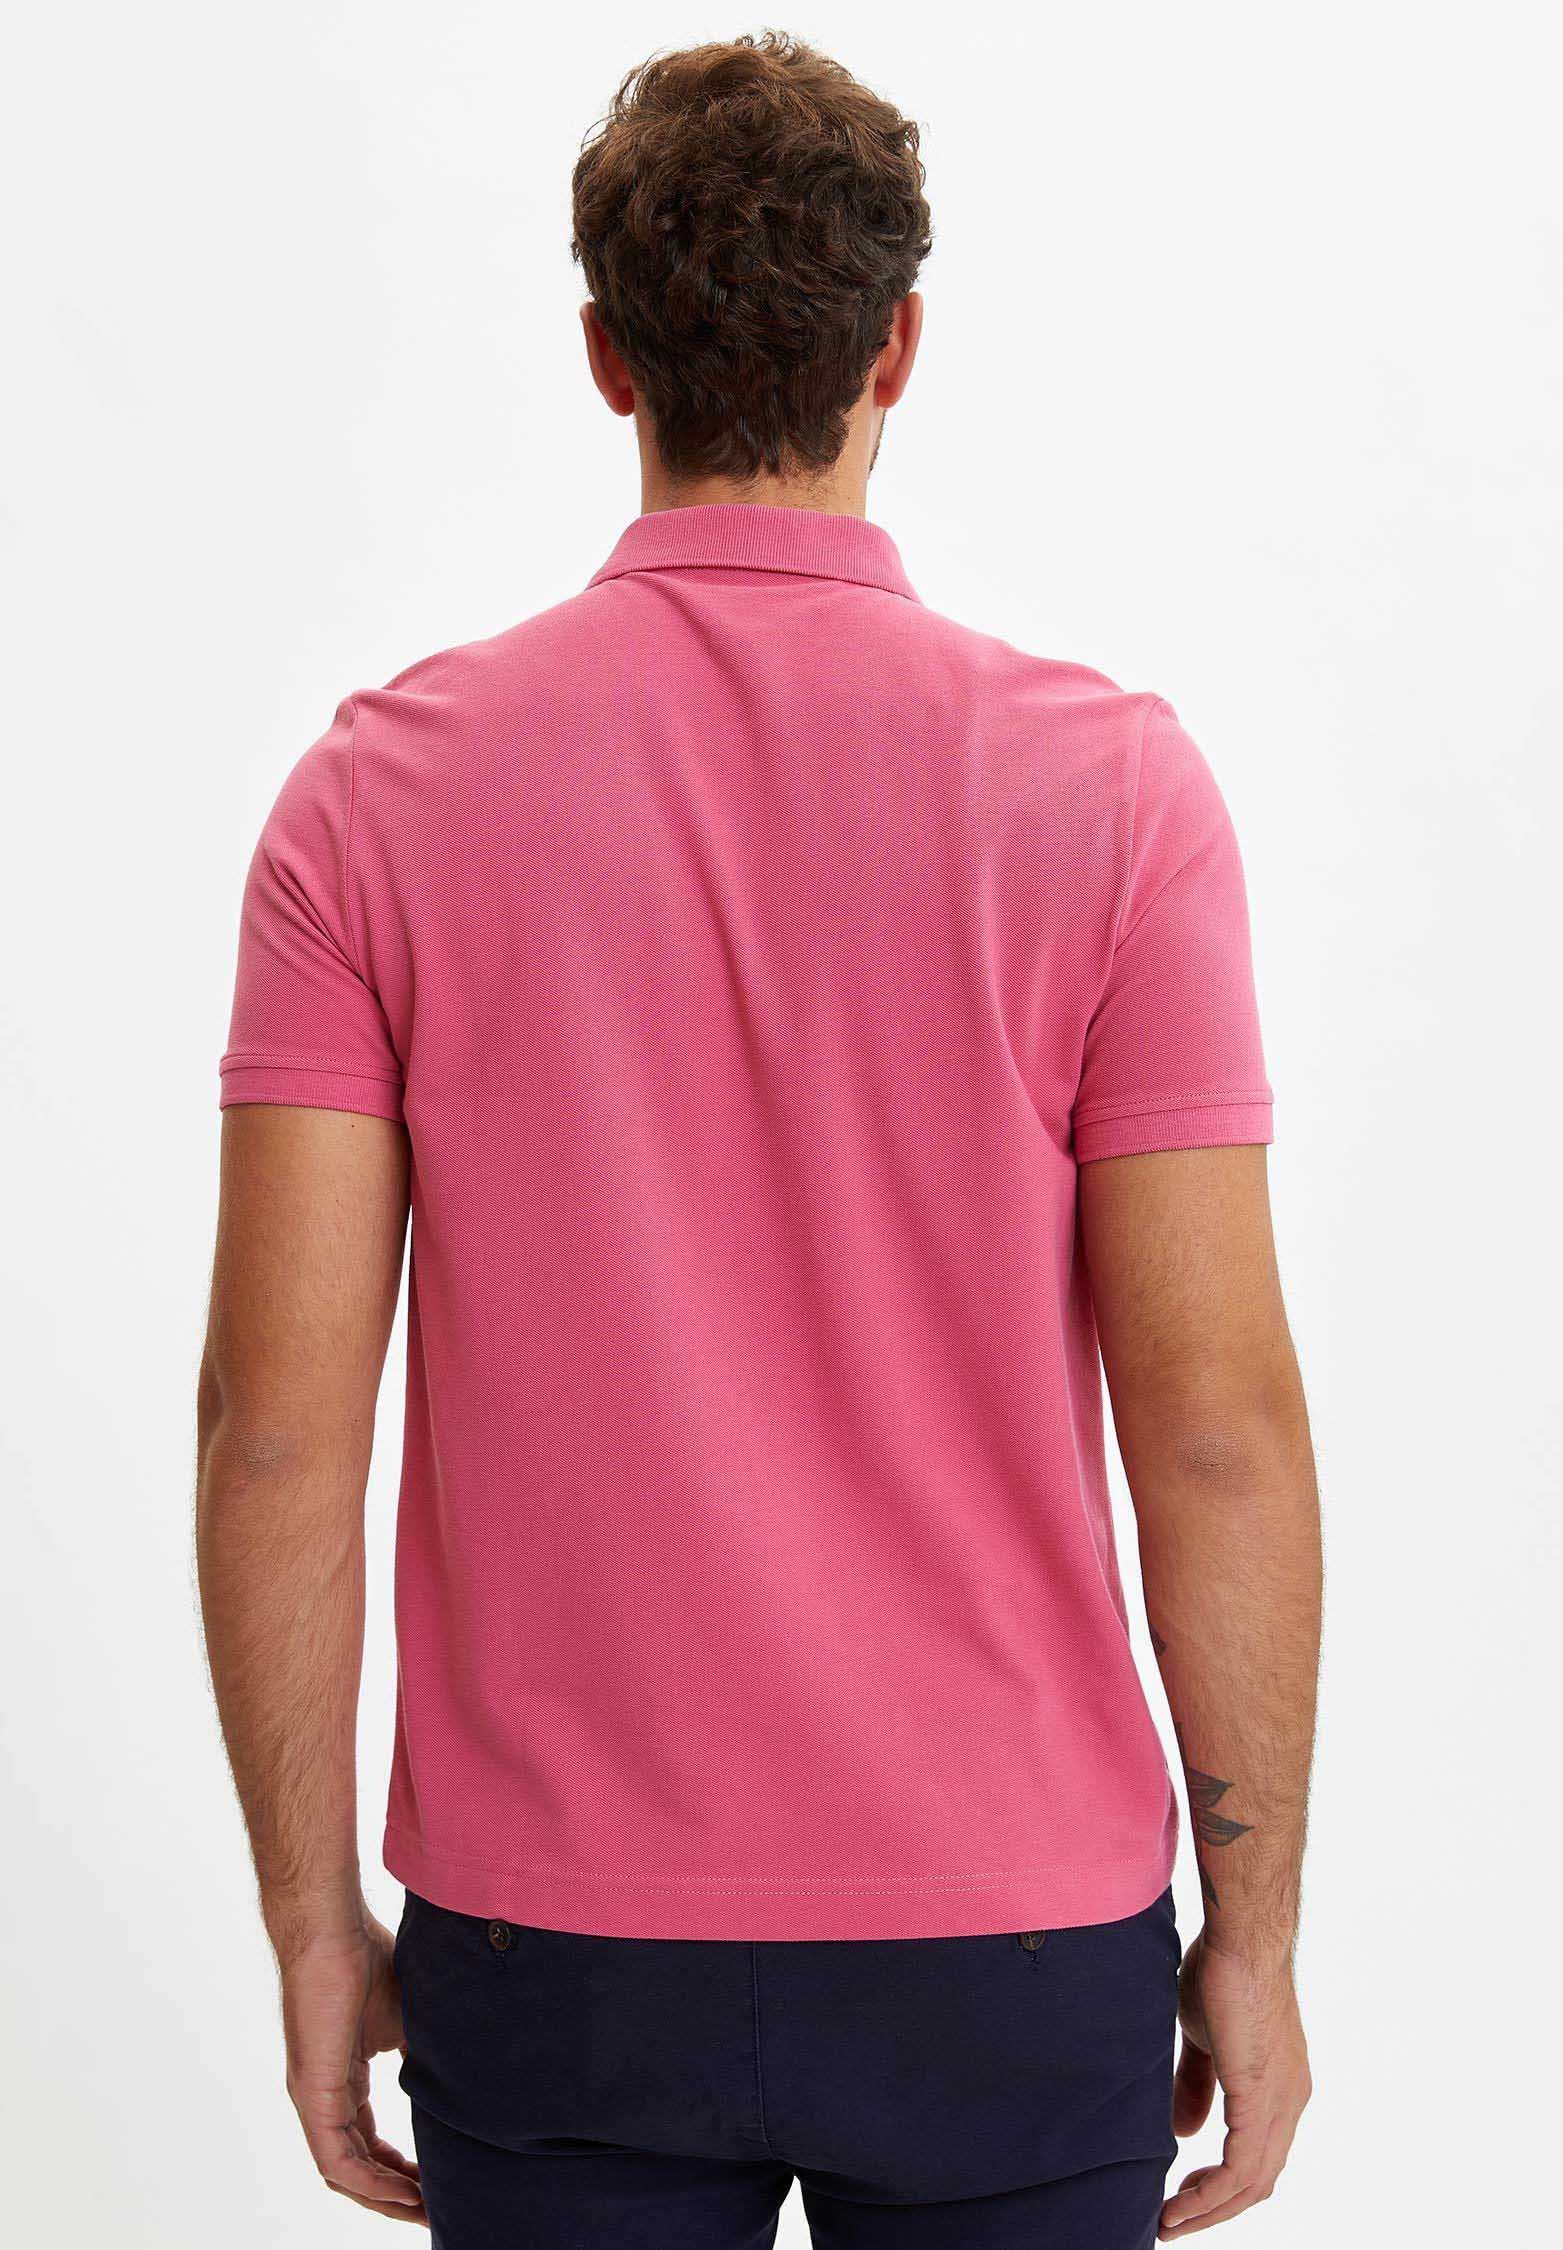 DeFacto Polo shirt - red VeHd7